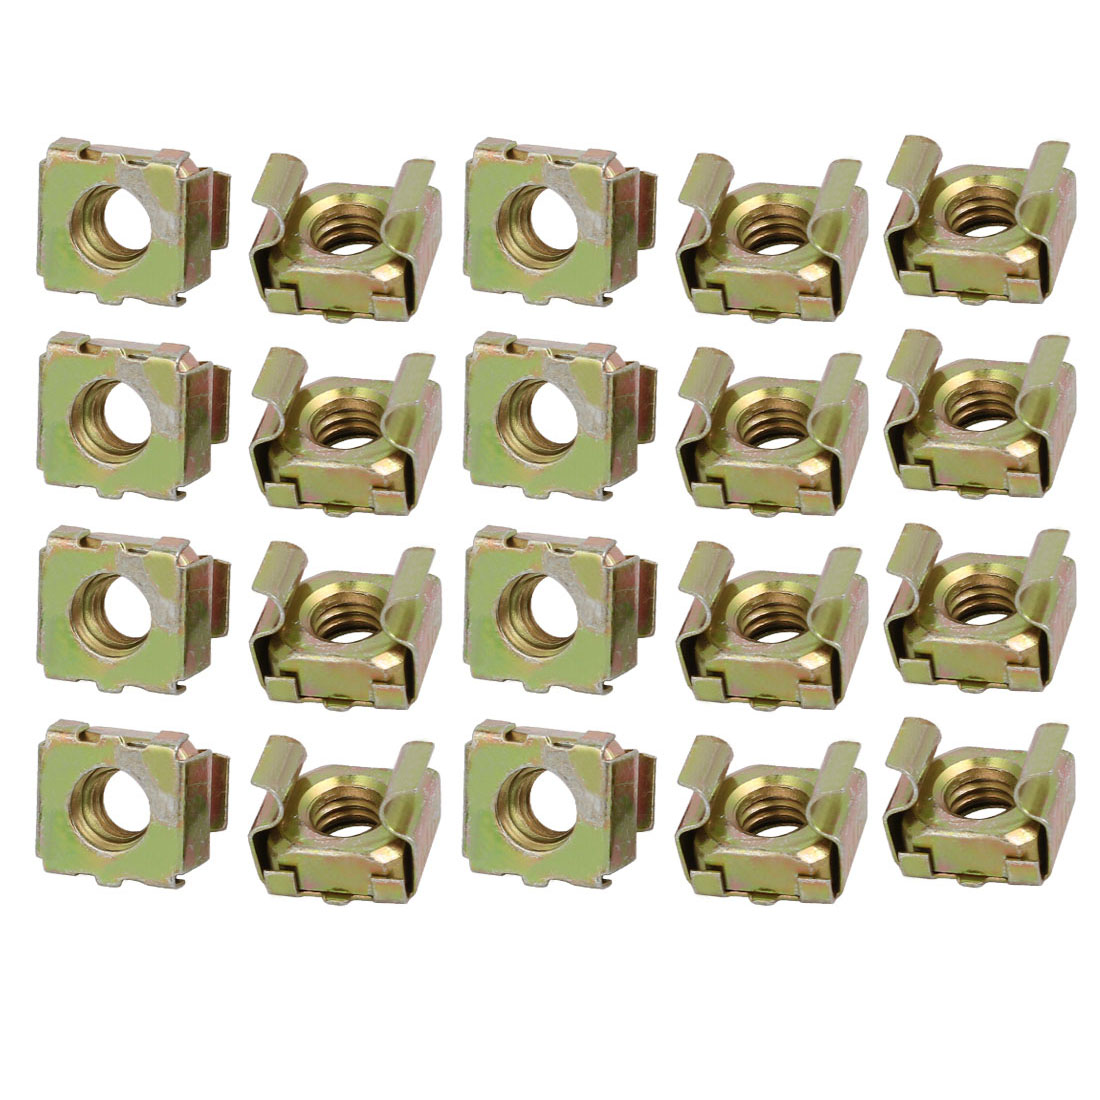 20pcs M6 65Mn Spring Steel Captive Cage Nut for Server Shelf Cabinet